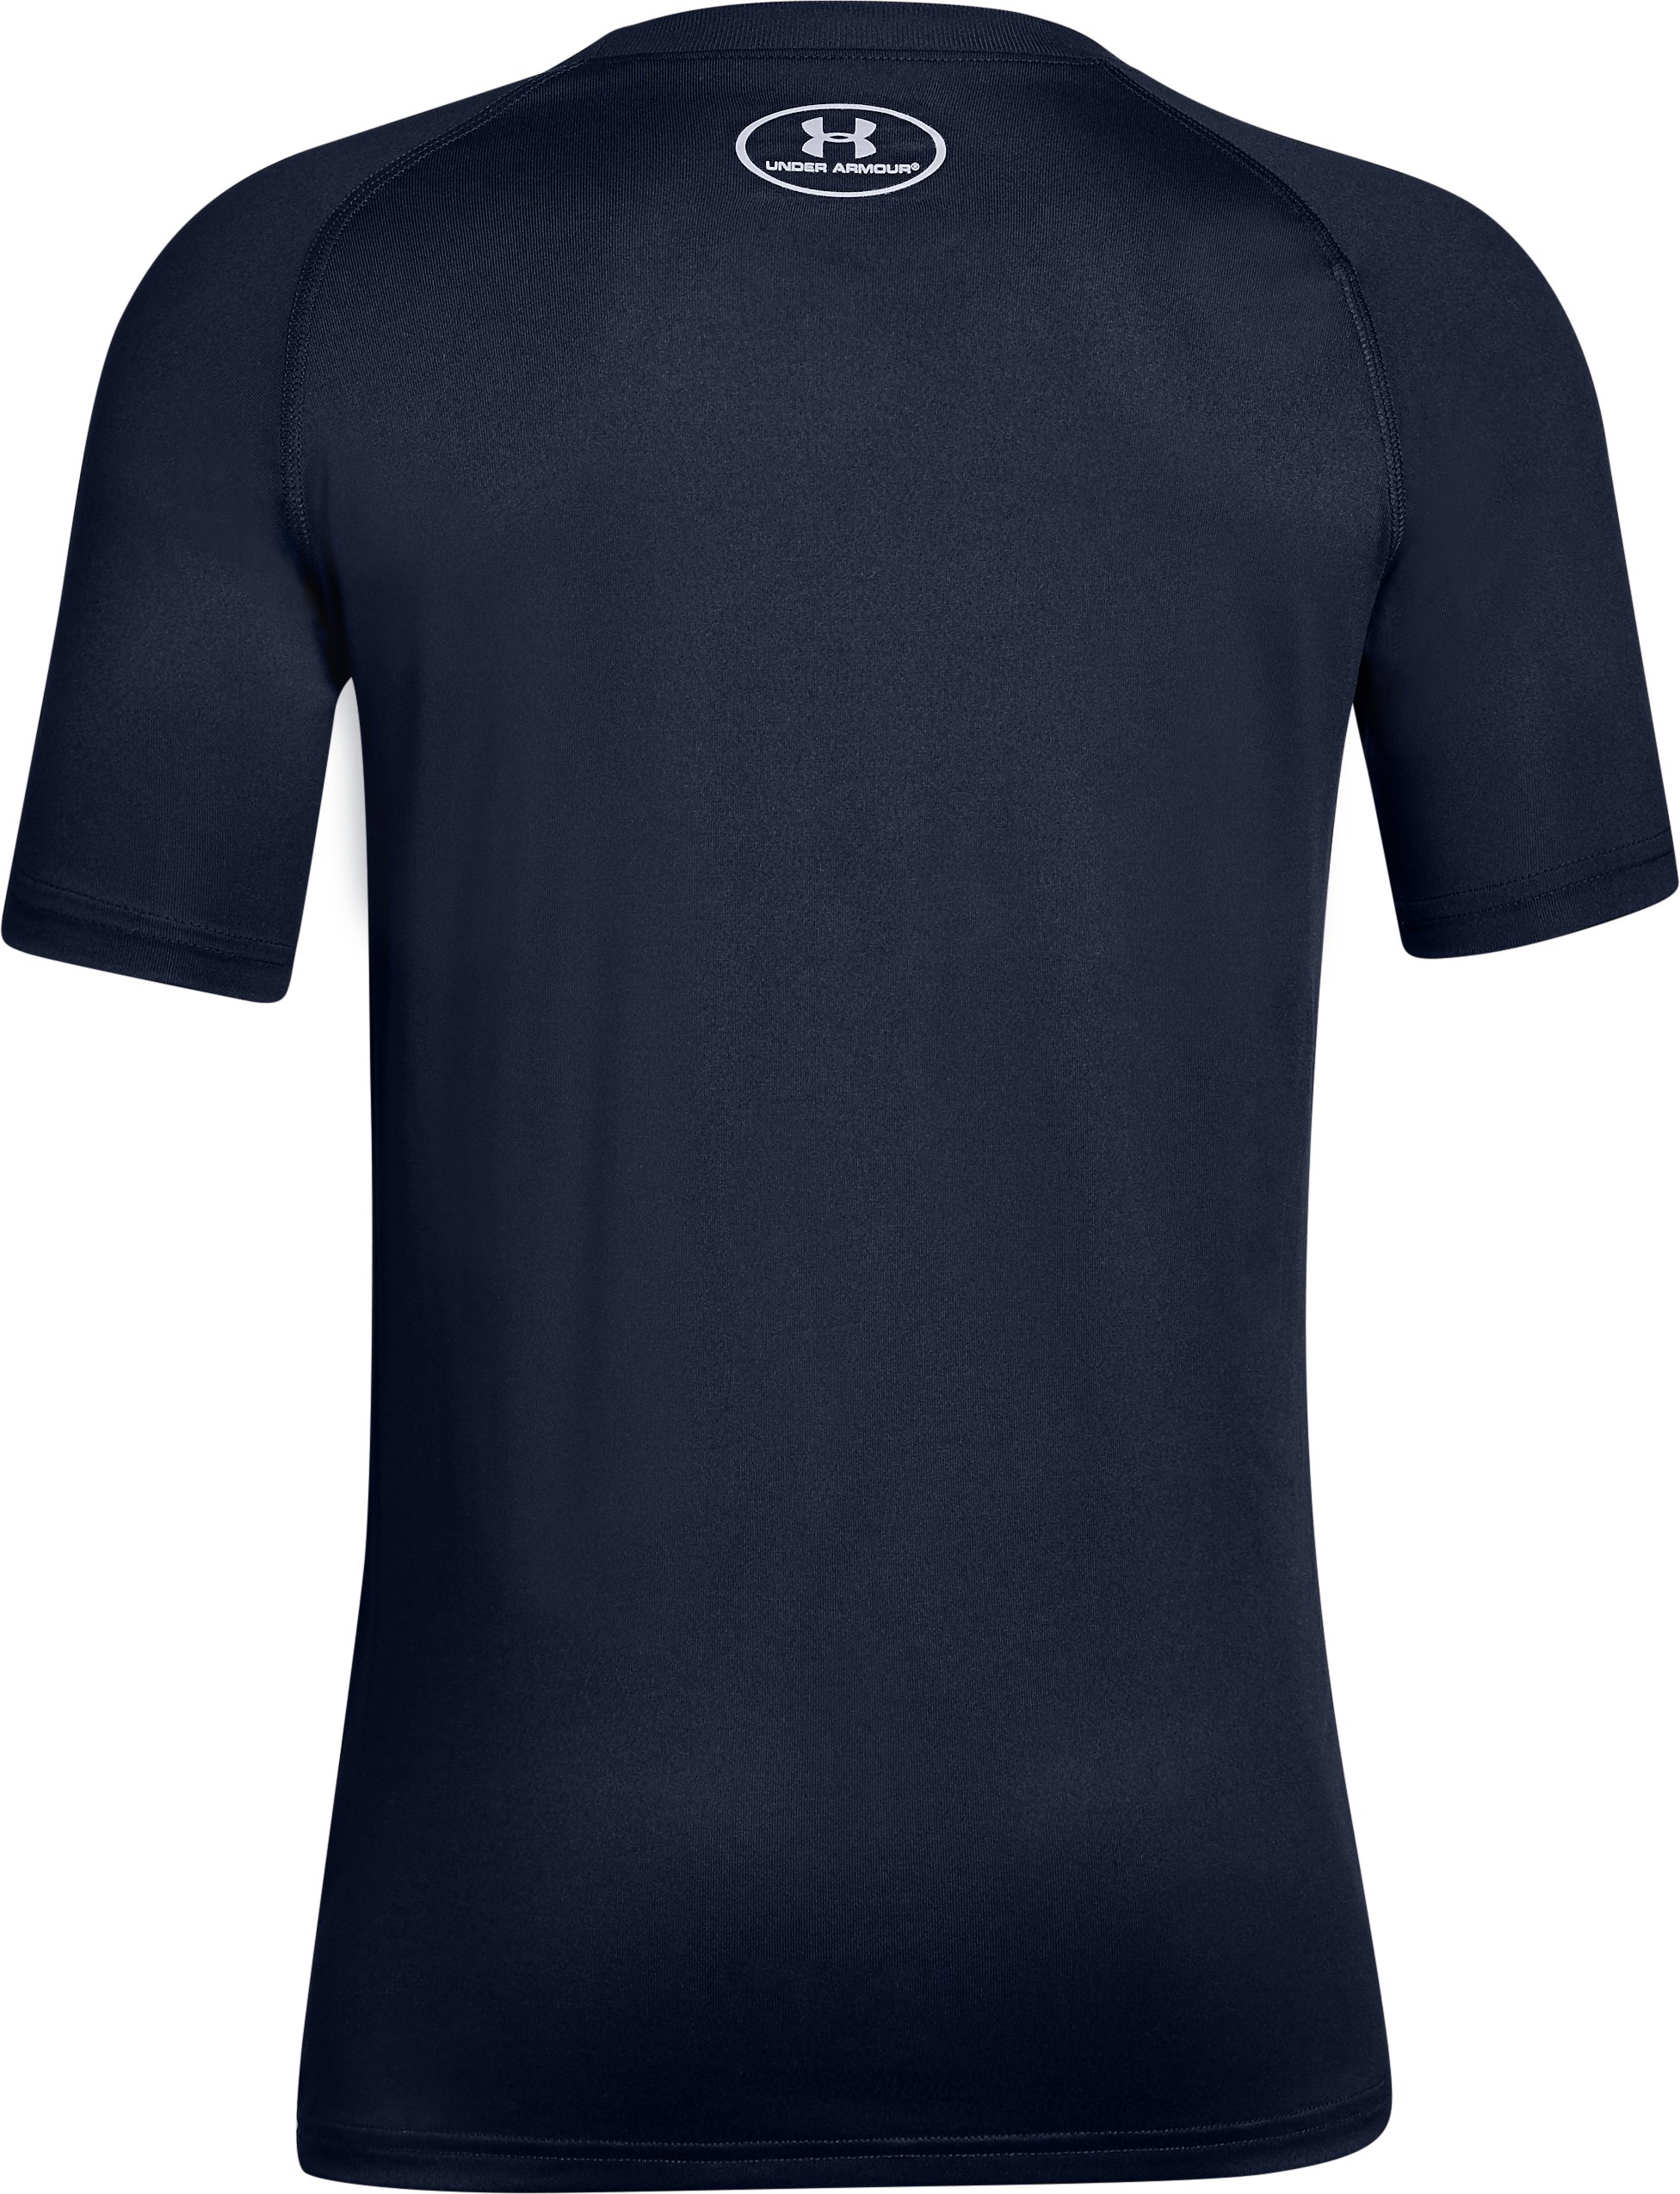 Boy's Notre Dame UA Tech™ T-Shirt, Midnight Navy, undefined